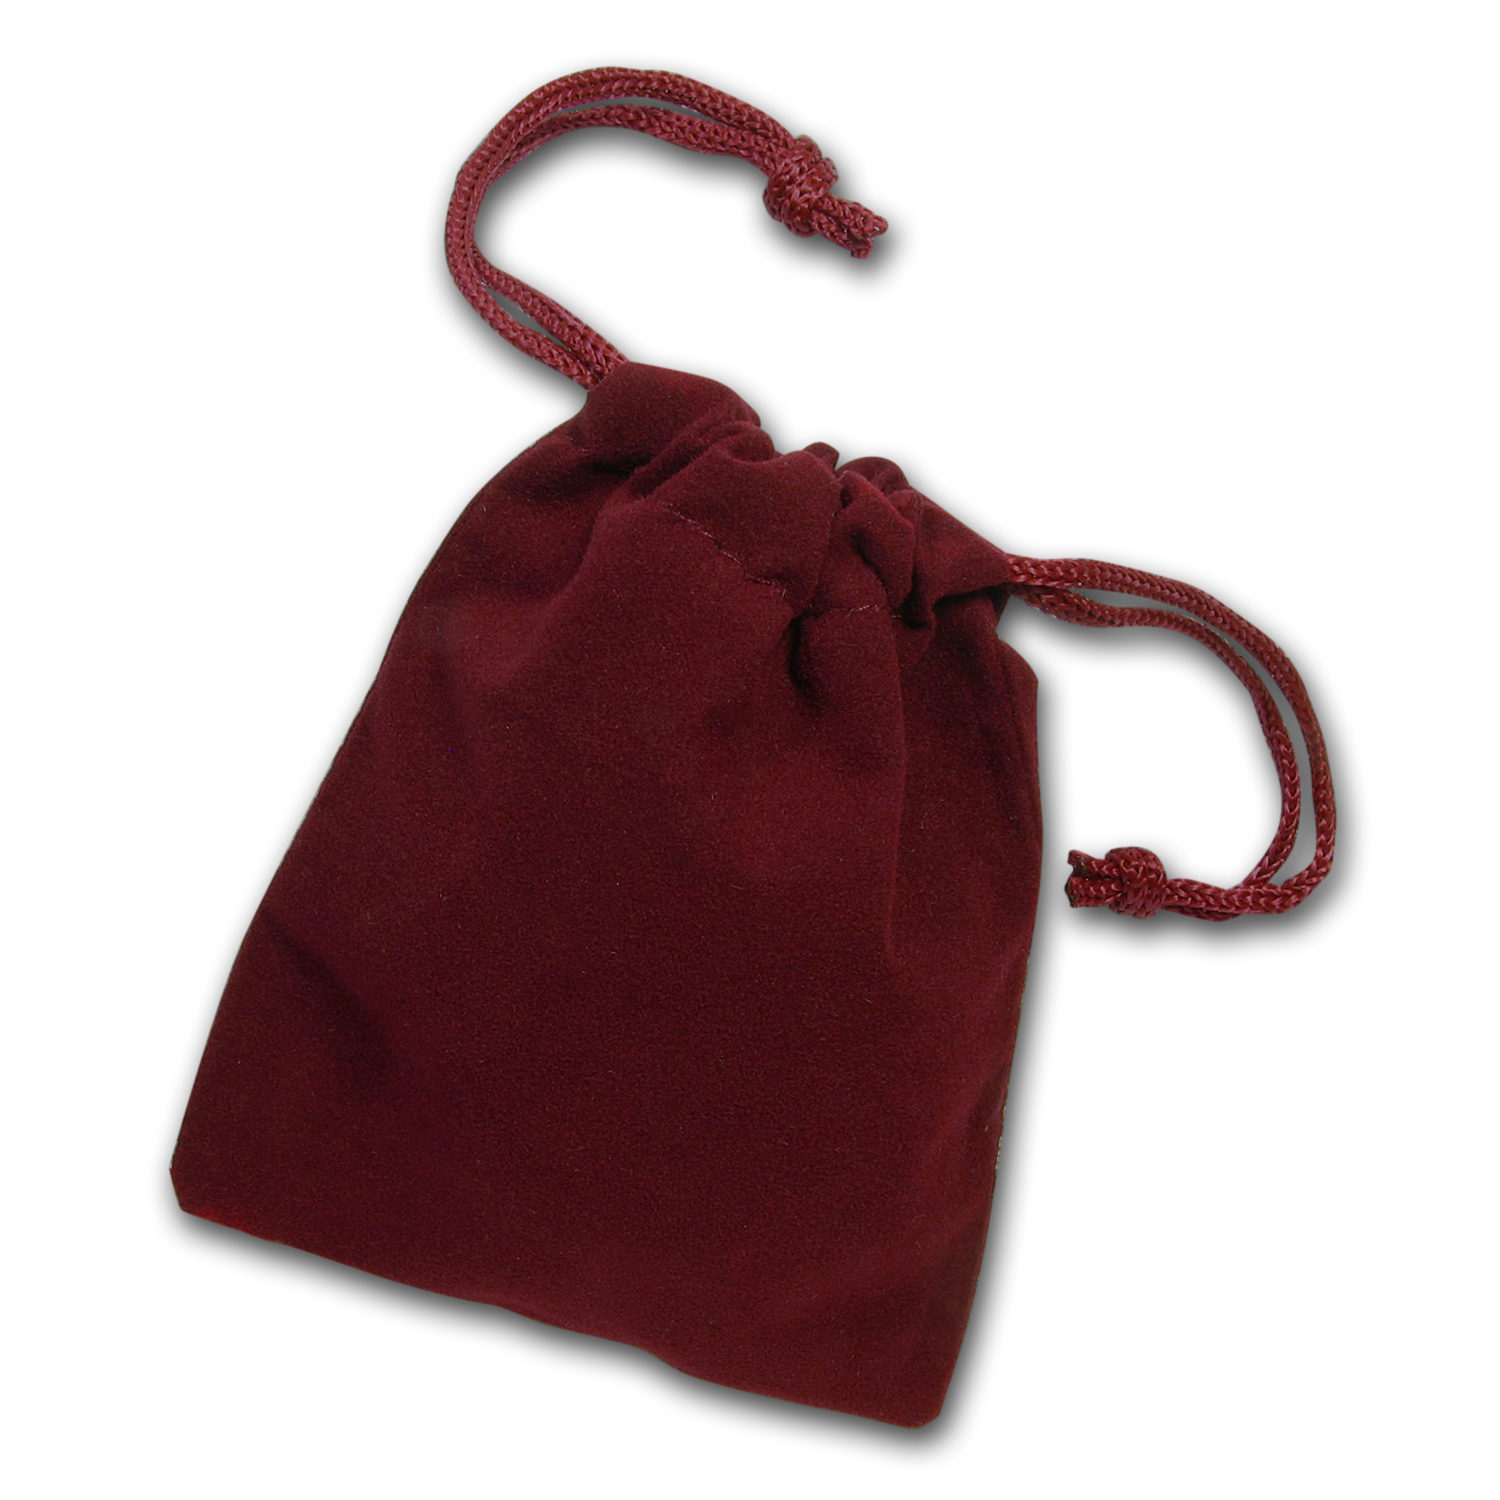 3 x 4 Velour Draw String Pouch (Burgundy)